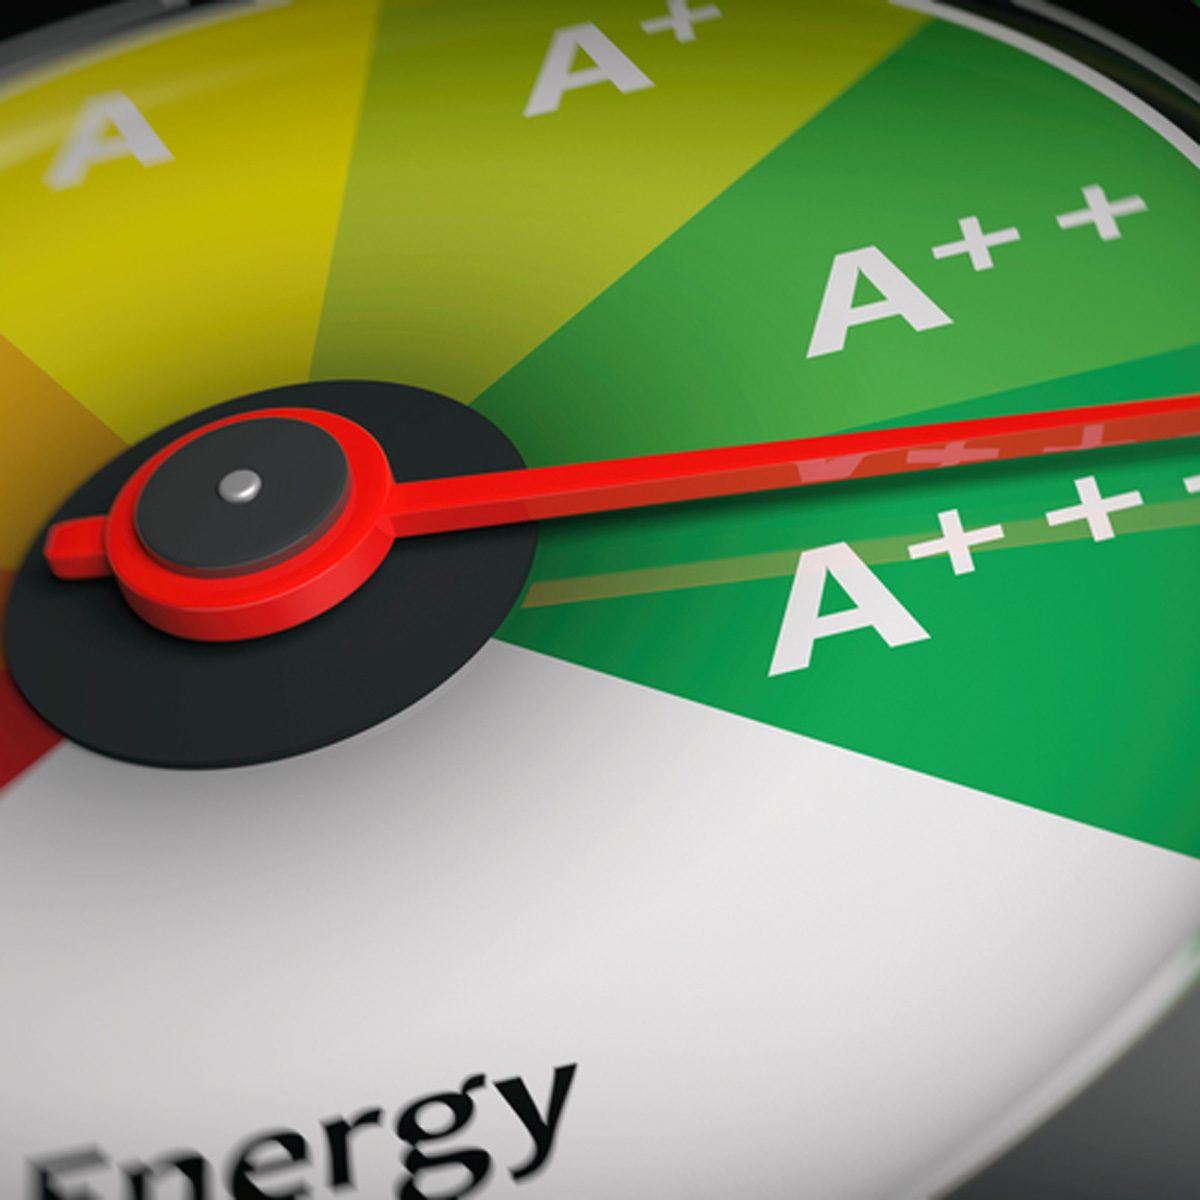 shutterstock_554613181 energy efficiency efficient grade meter